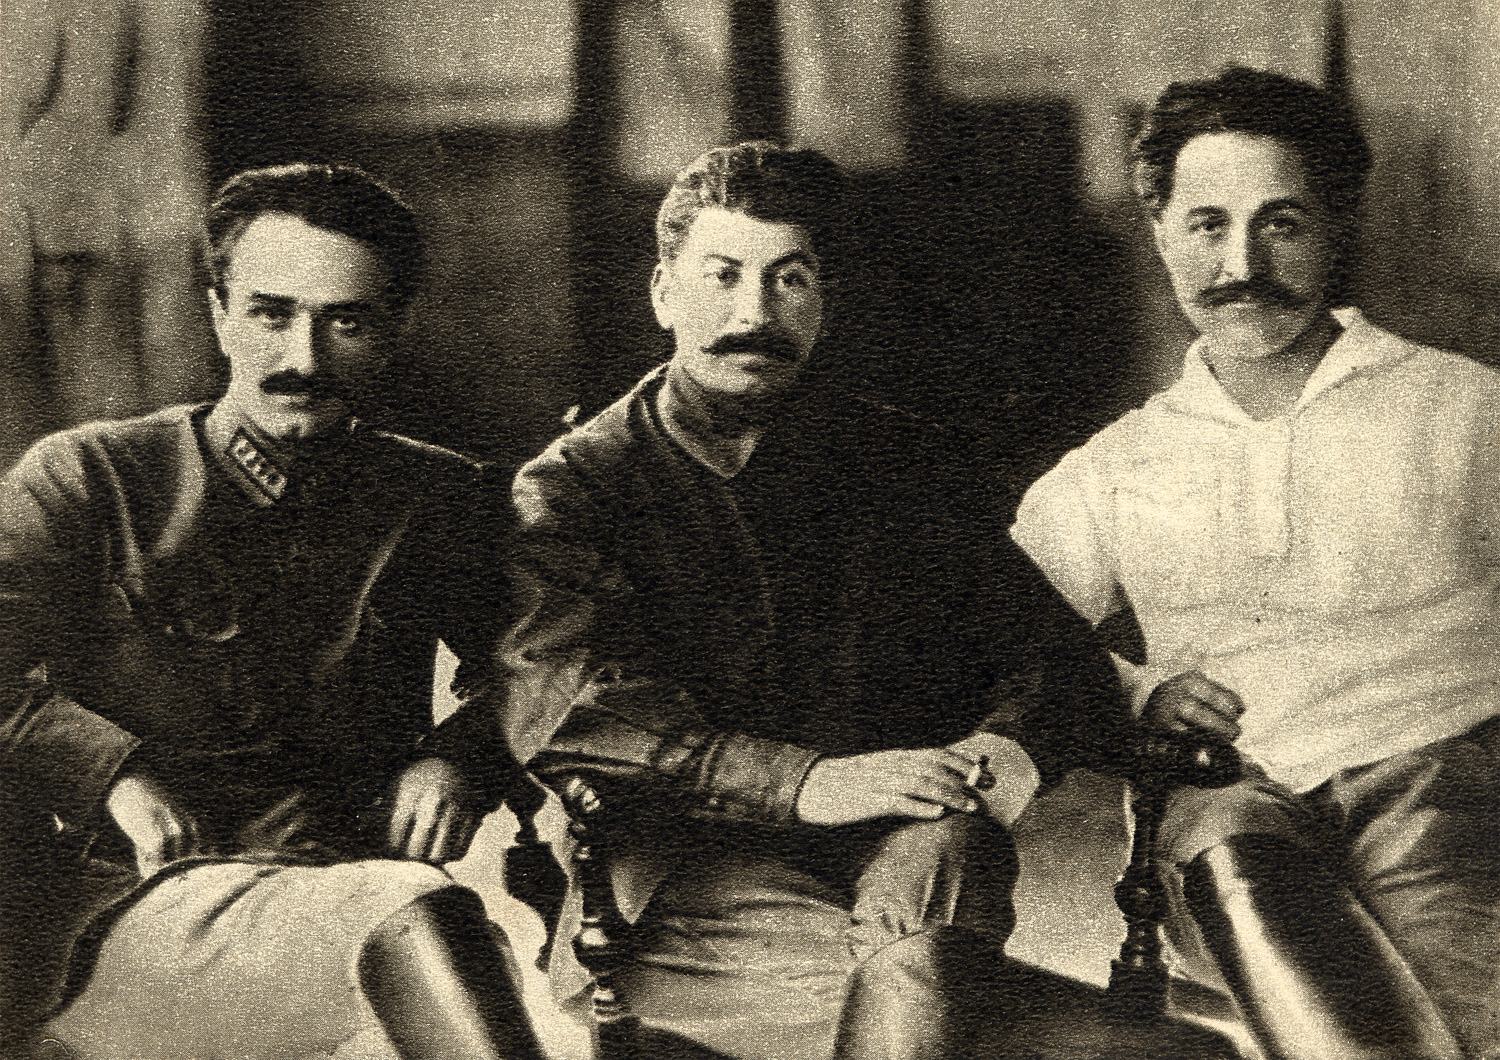 Ordzhonikidze,_Stalin_and_Mikoyan,_1925.jpg